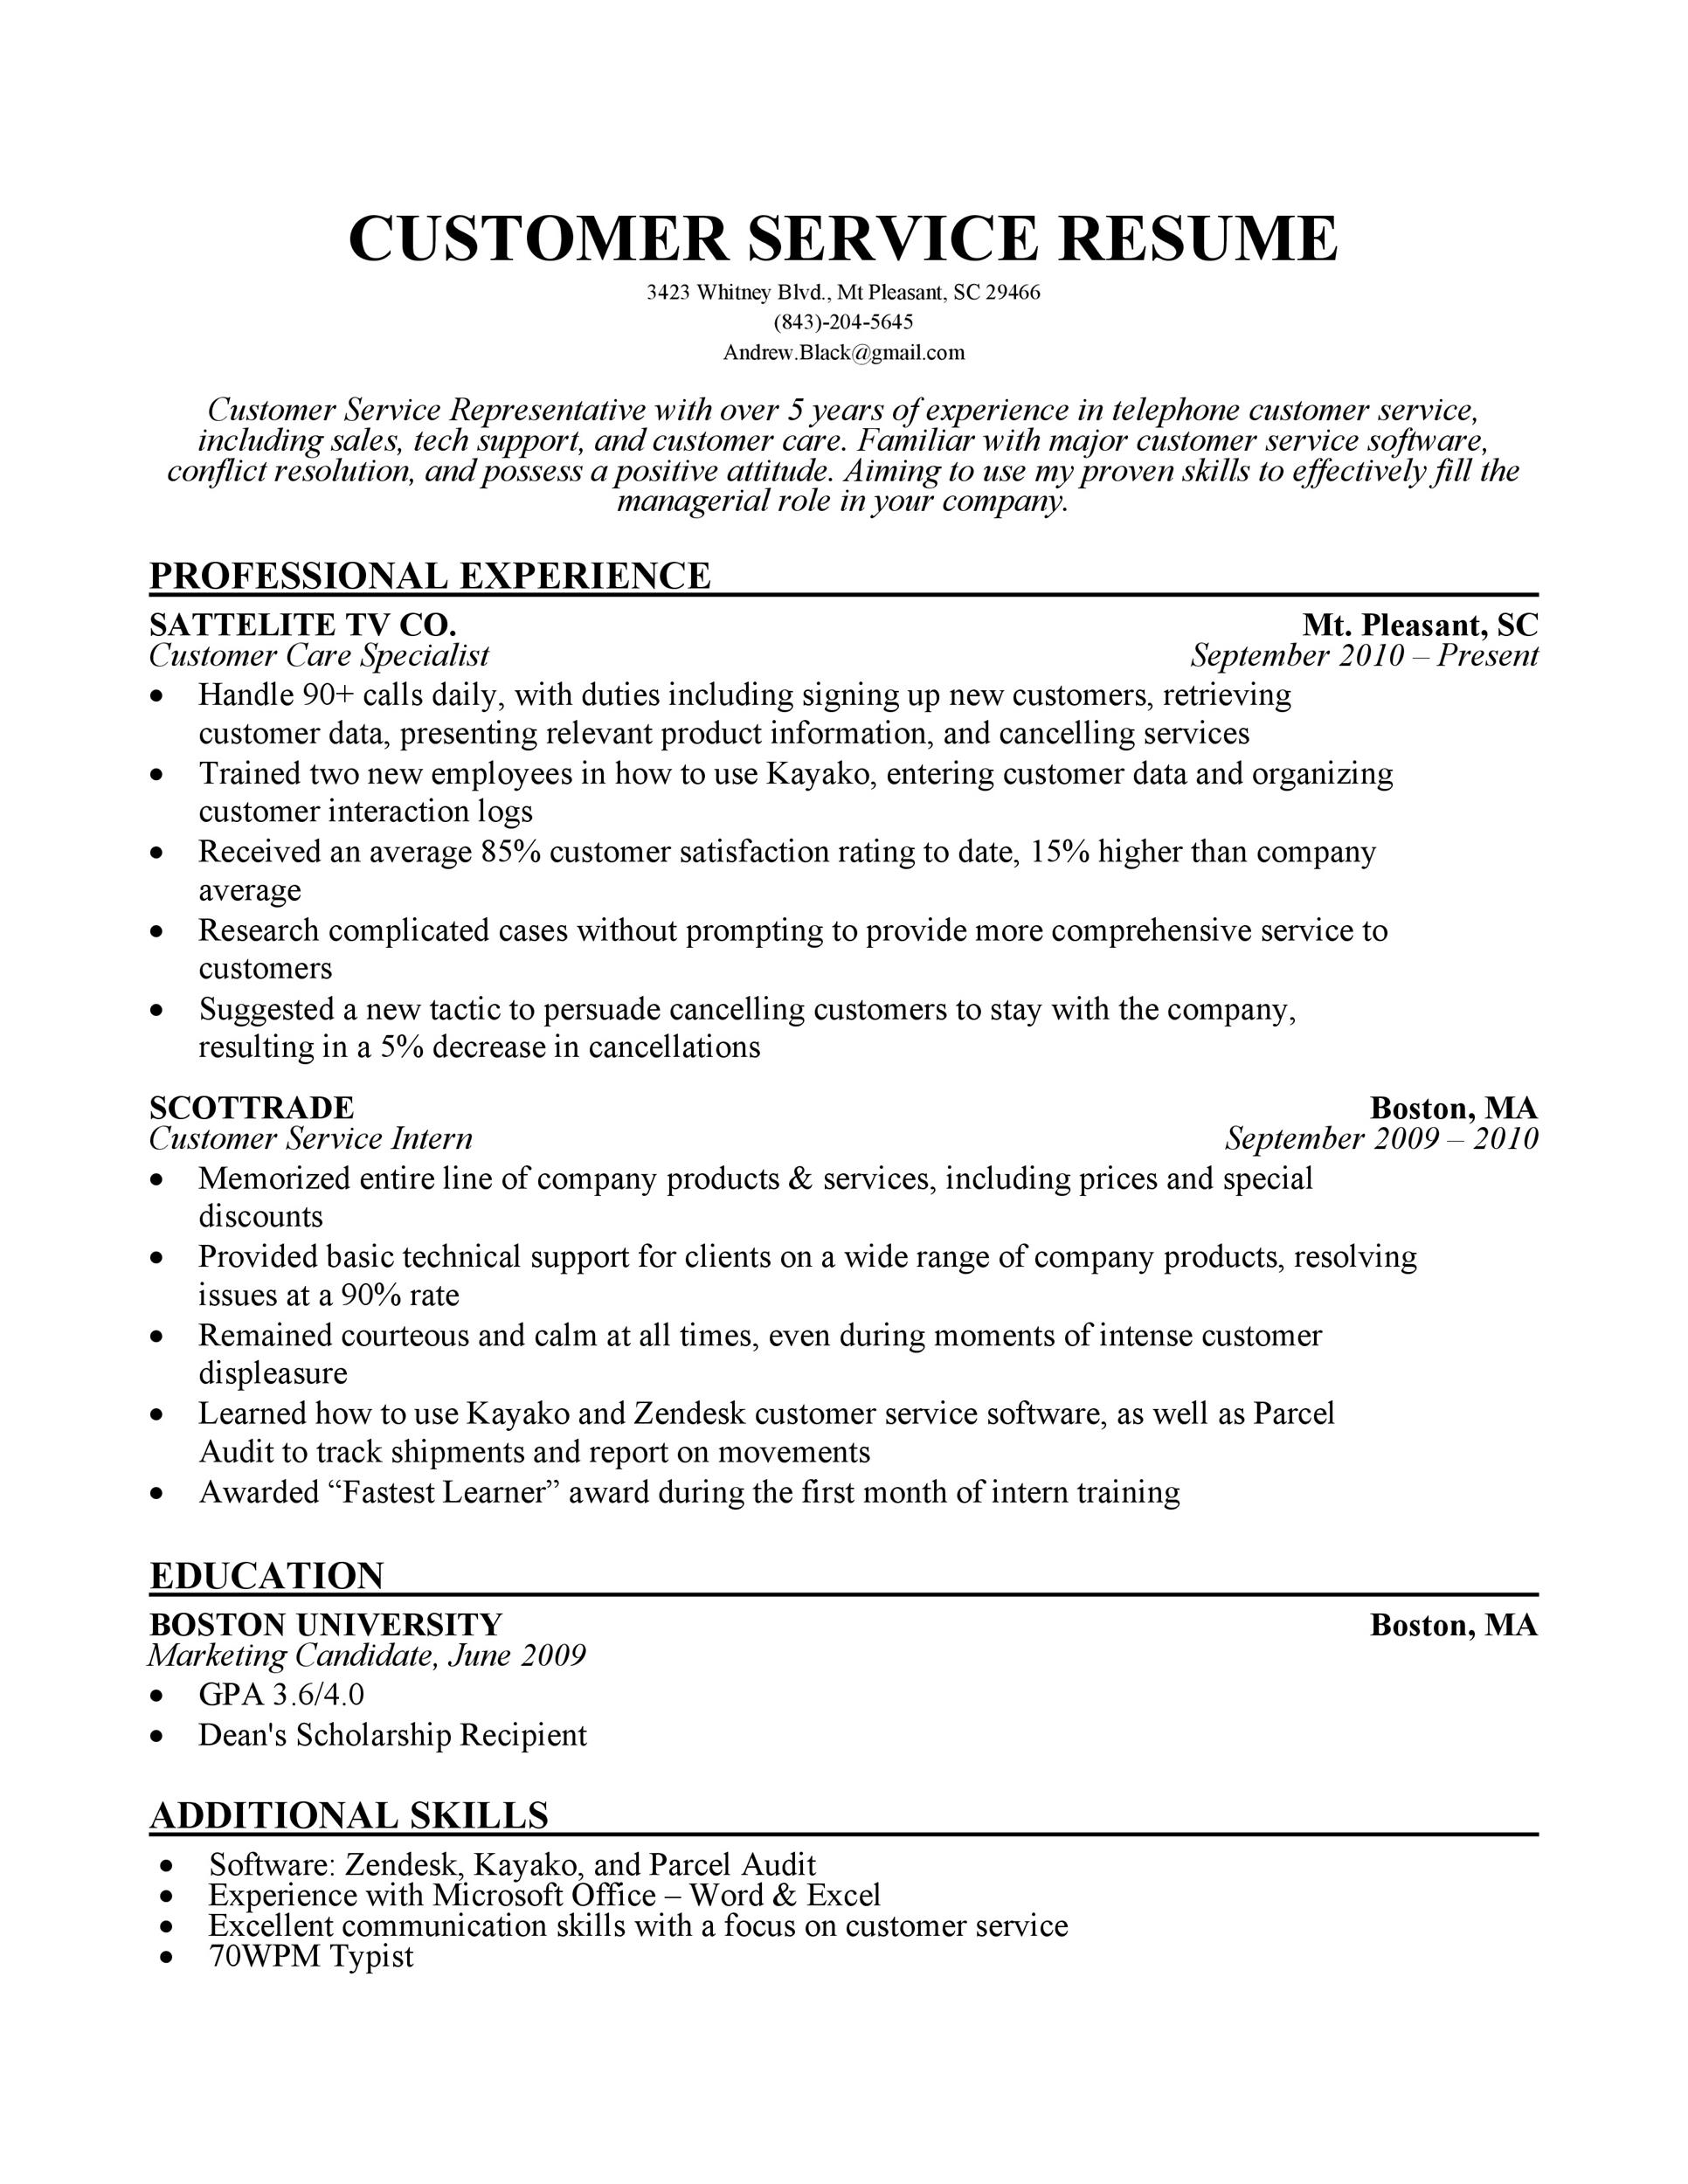 30+ Customer Service Resume Examples - Template Lab - customer service resume template free